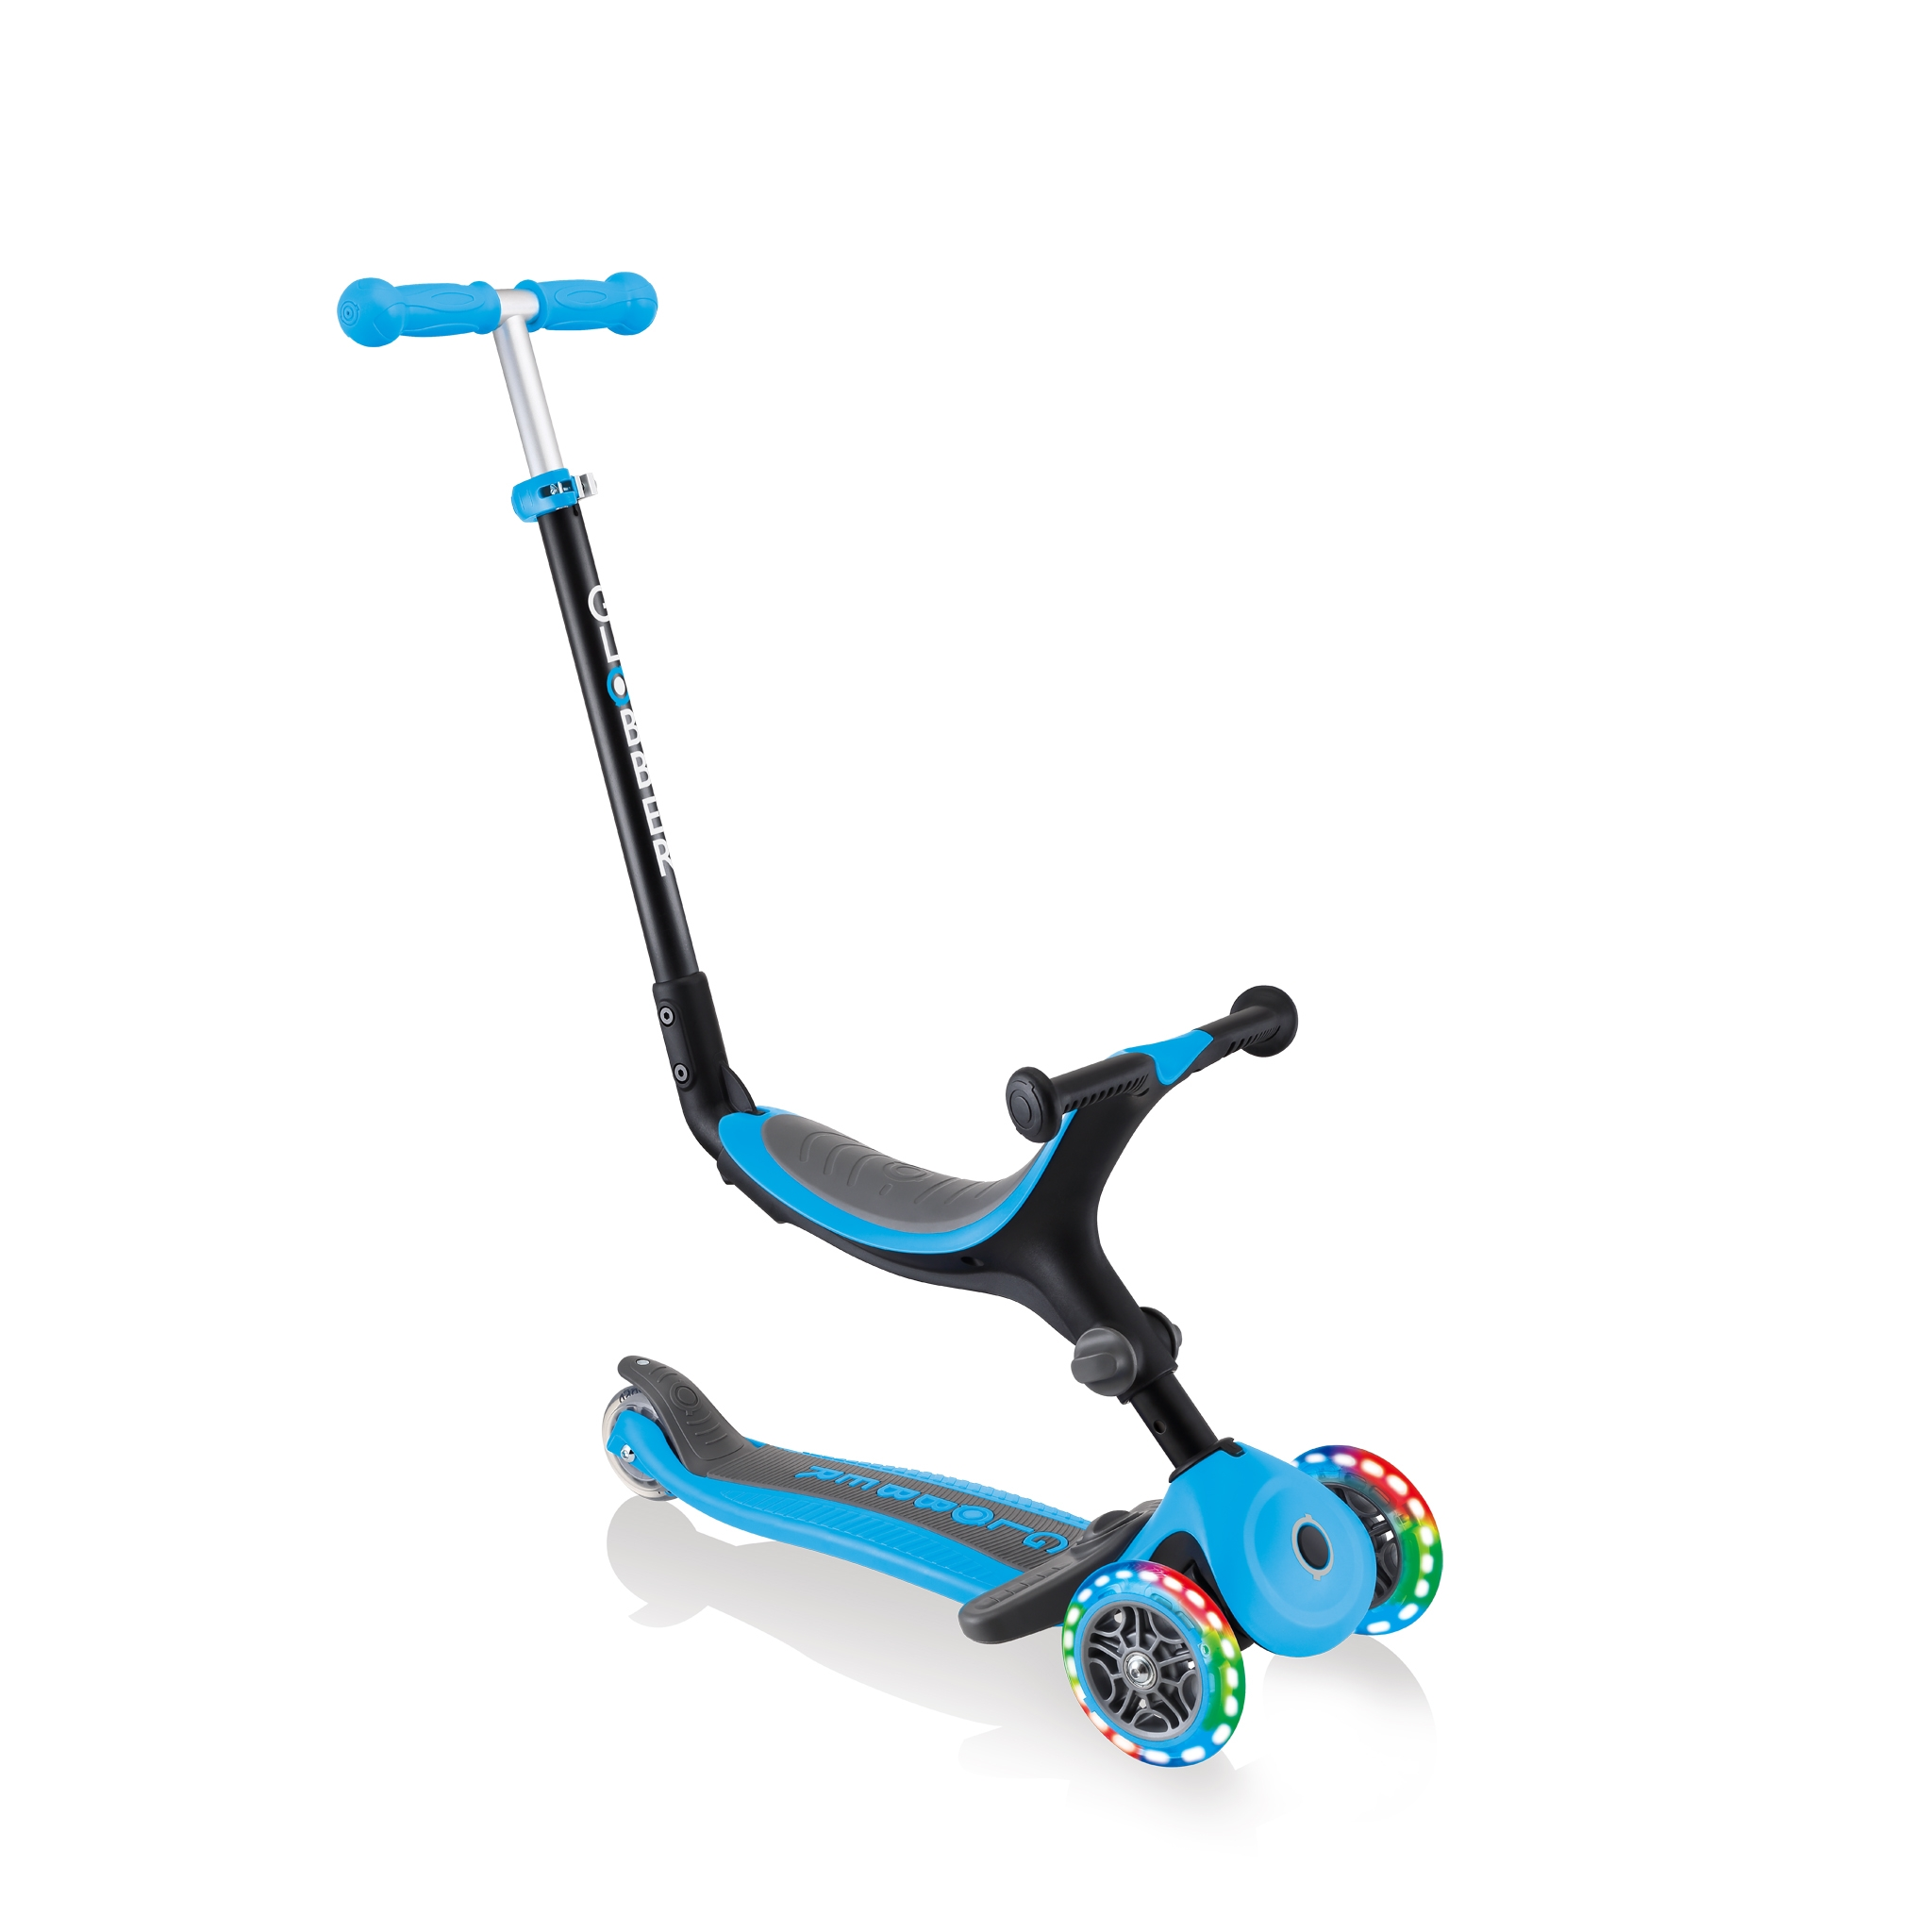 Globber-GO-UP-FOLDABLE-PLUS-LIGHTS-3-in-1-light-up-scooter-for-toddlers-ride-on-mode 0